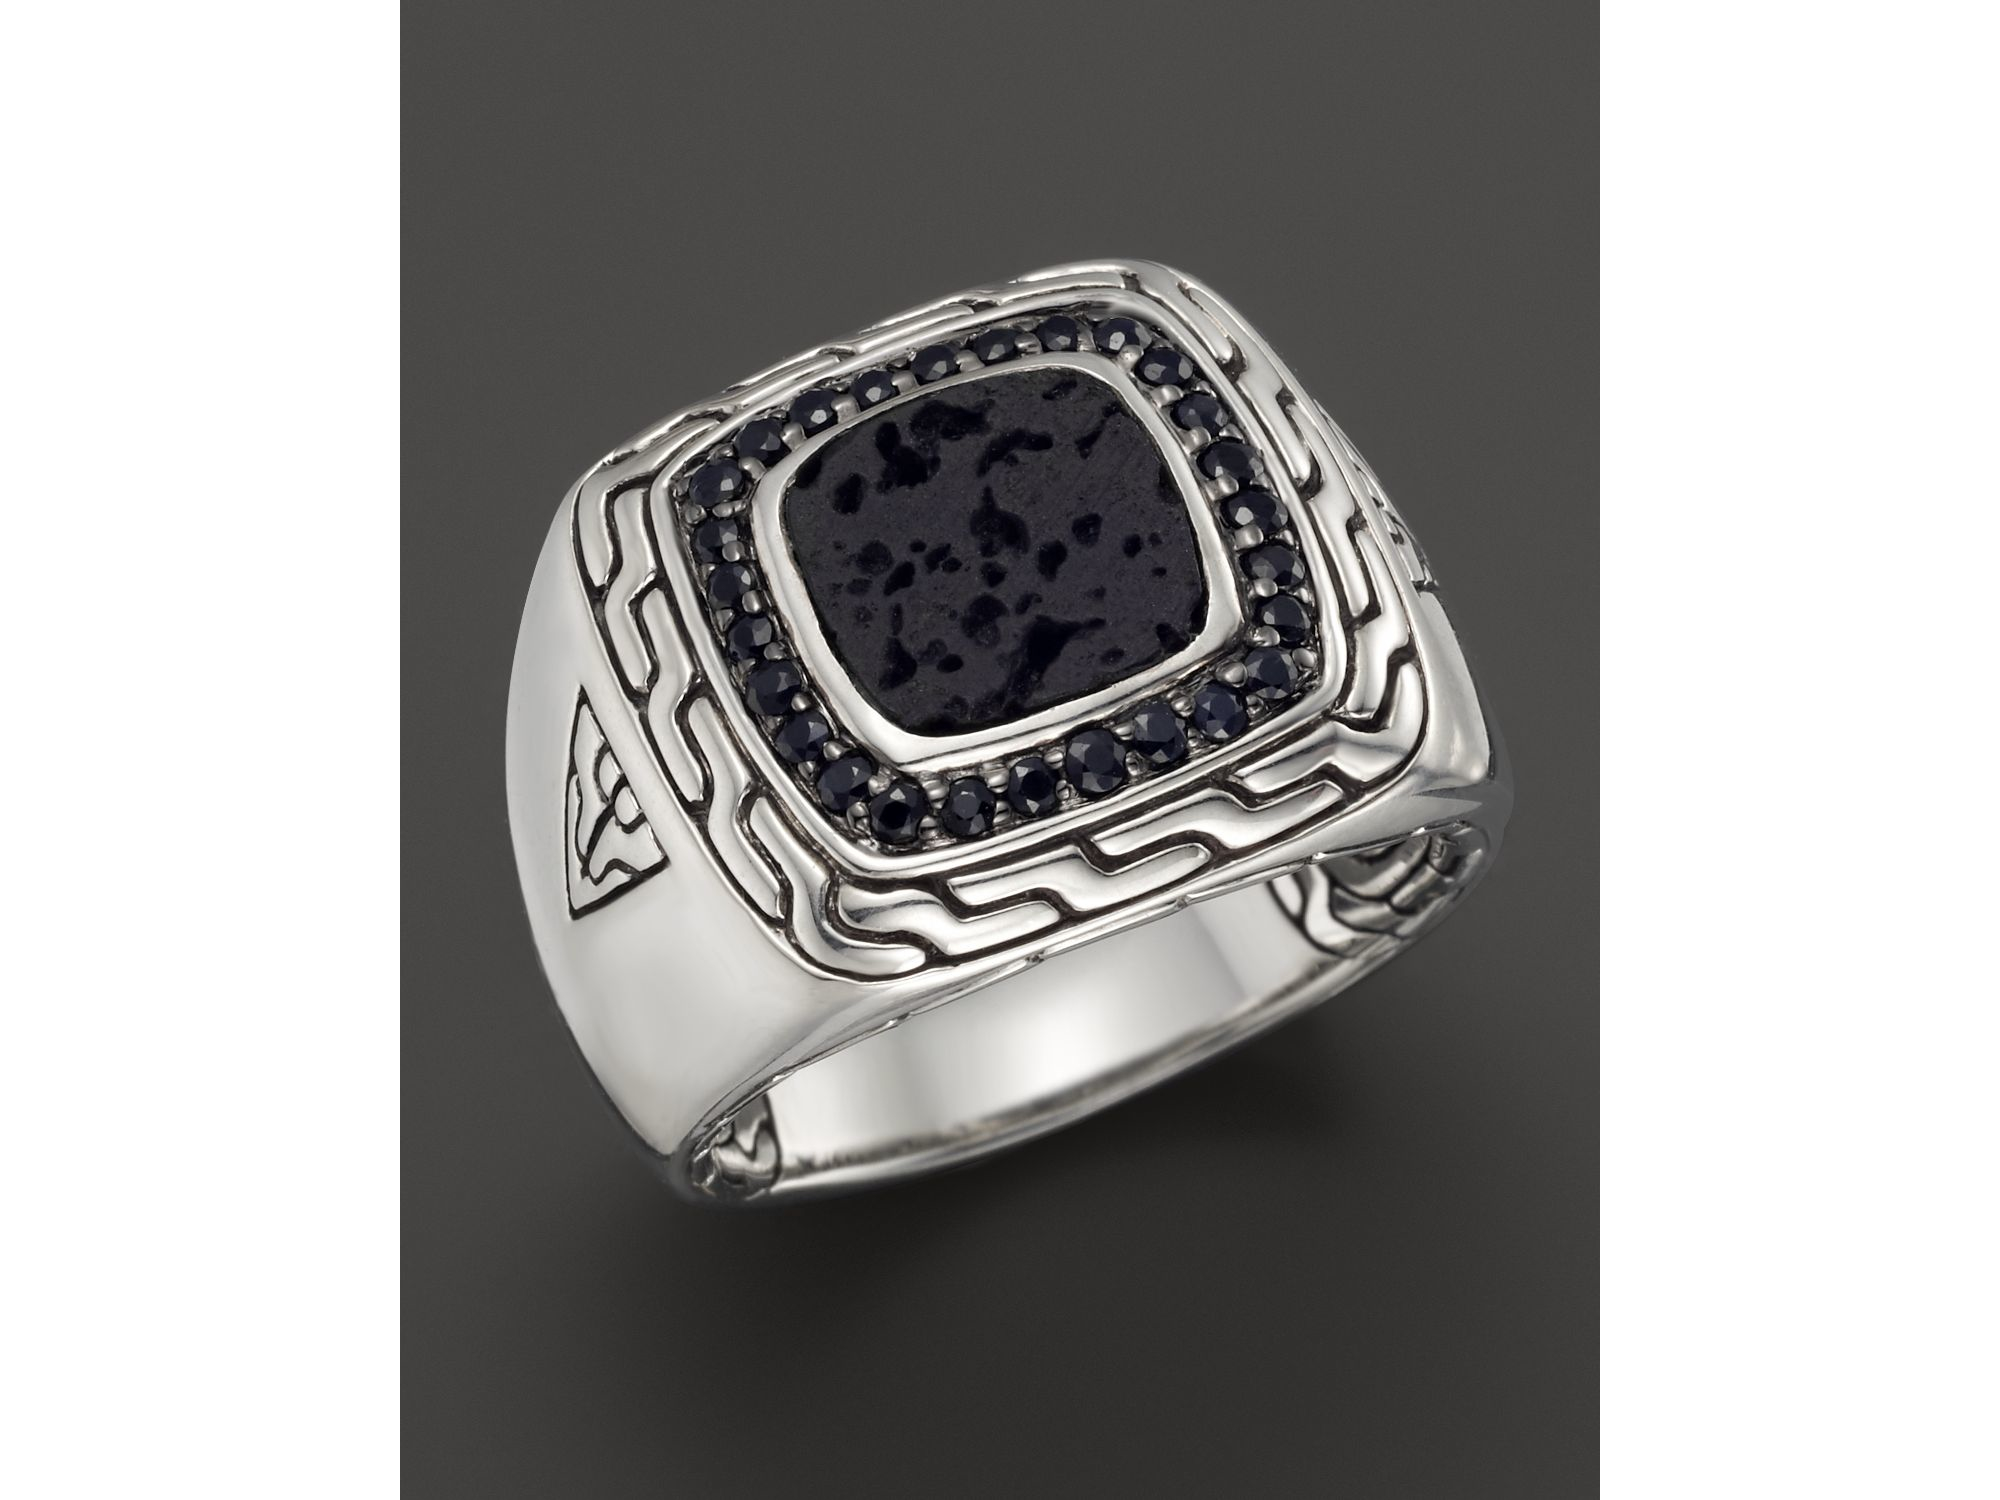 1ab12f10e68cf John Hardy Men S Silver Rings - Foto Ring and Wallpaper